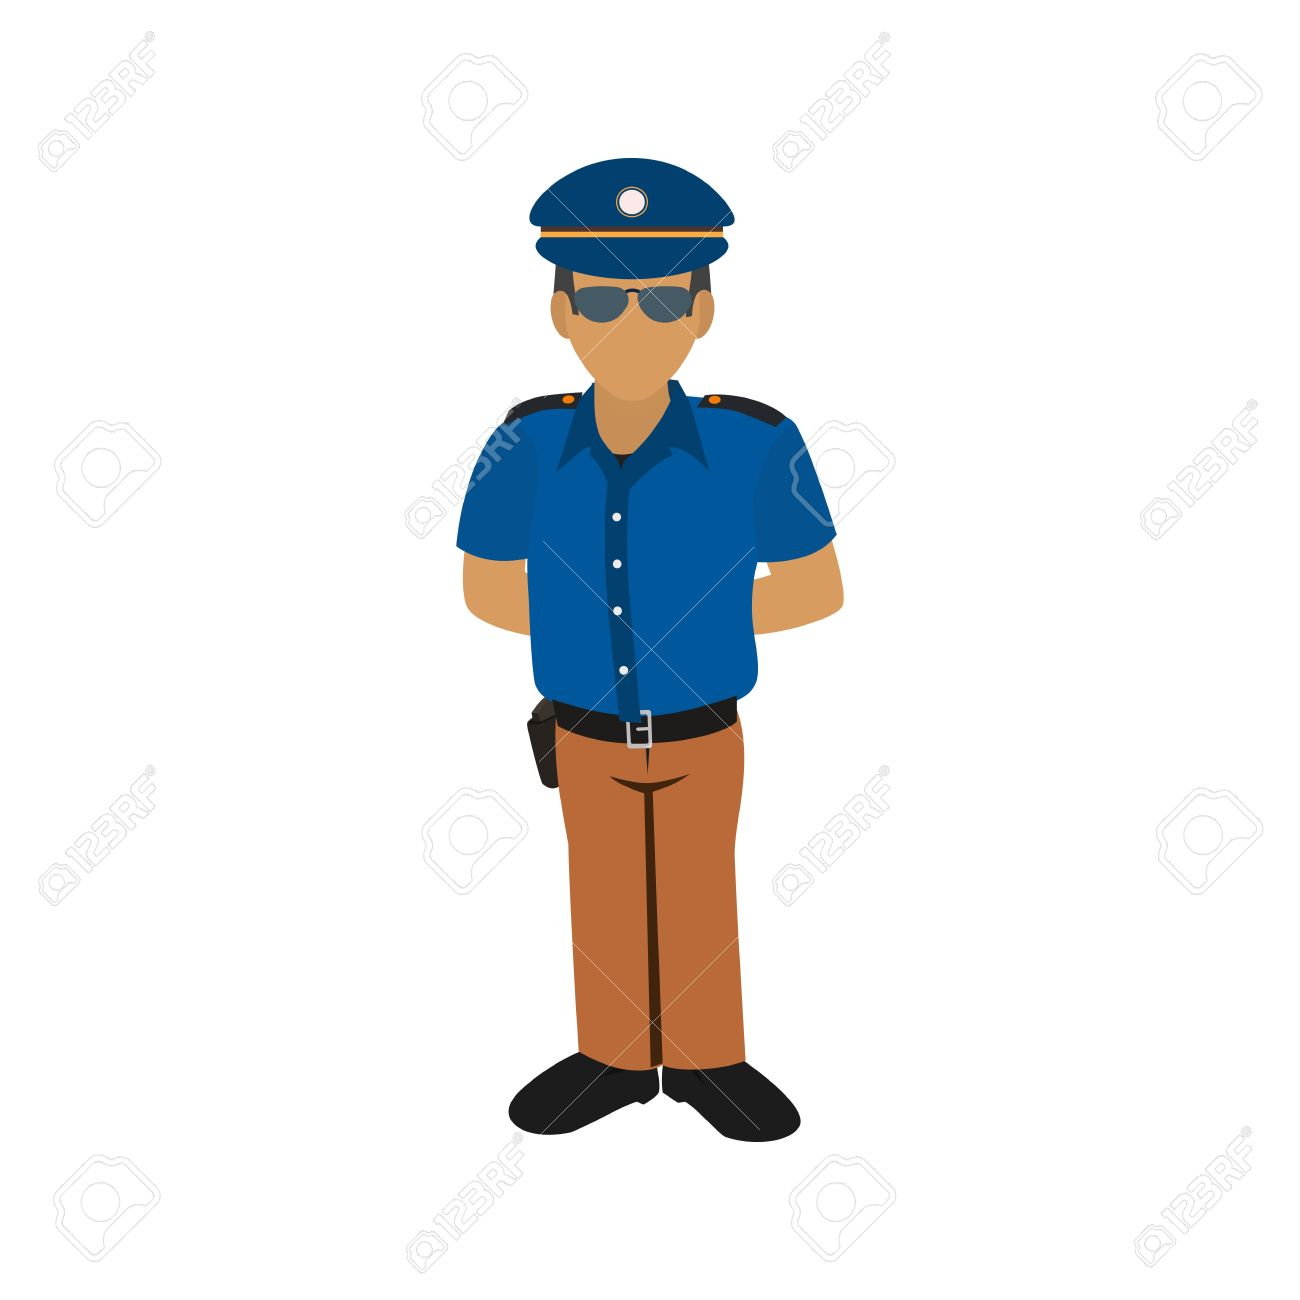 1300x1300 67,102 Security Guard Cliparts, Stock Vector And Royalty Free